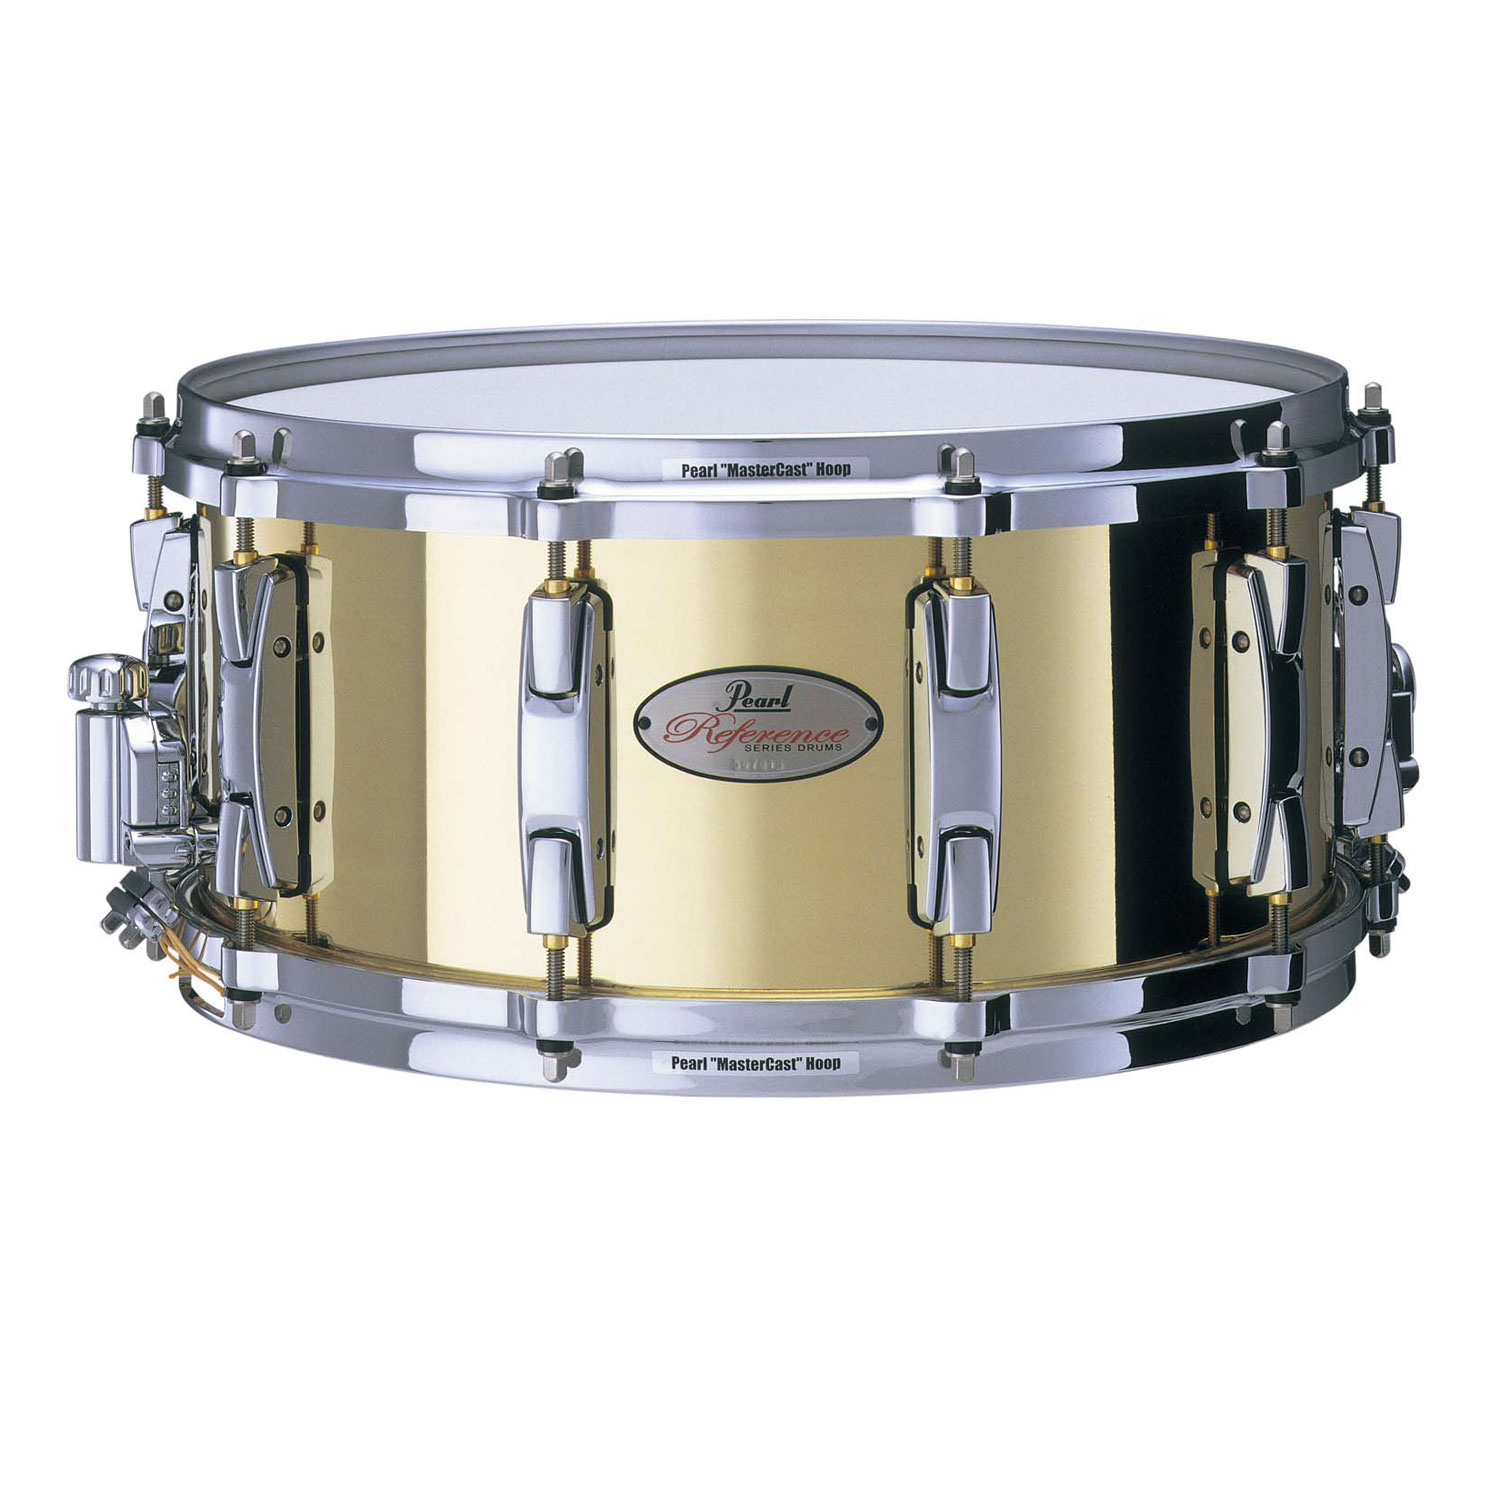 "Pearl 14"" x 6.5"" 3mm Brass Snare Drum"